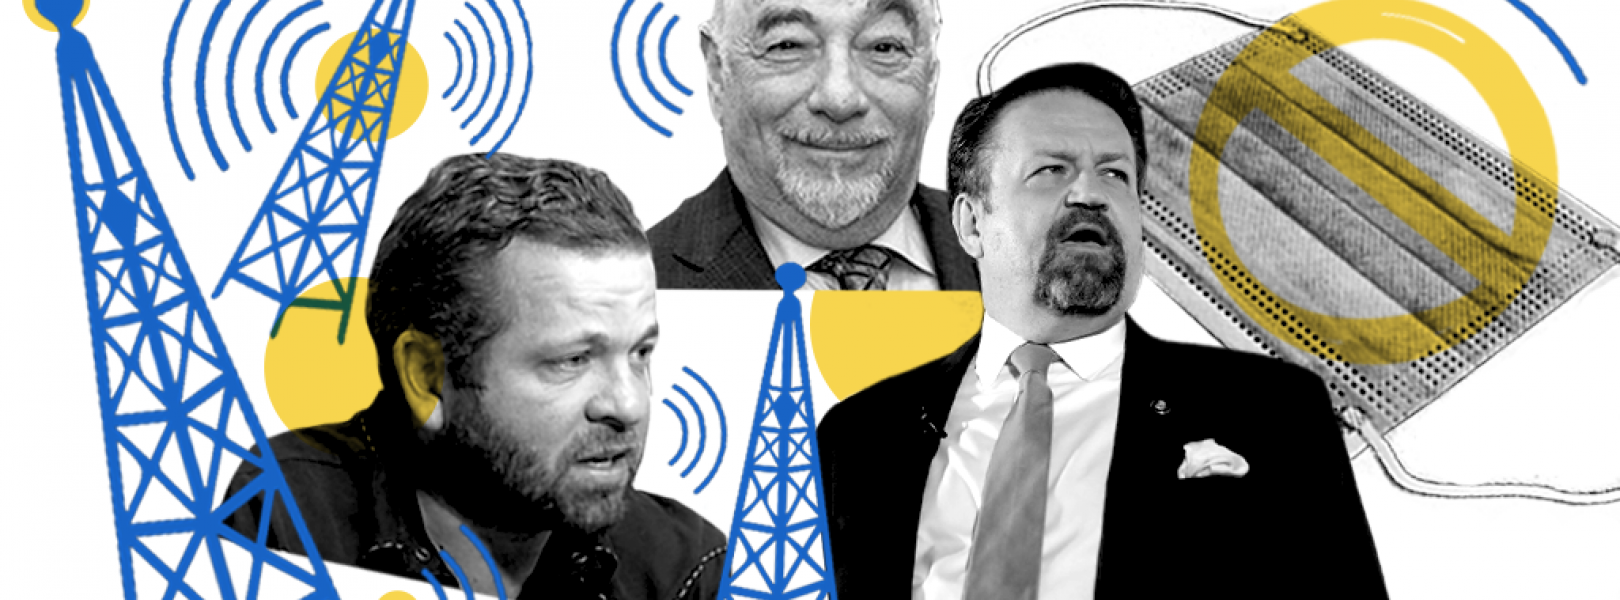 Michael Savage, Michael Berry and Sebastian Gorka